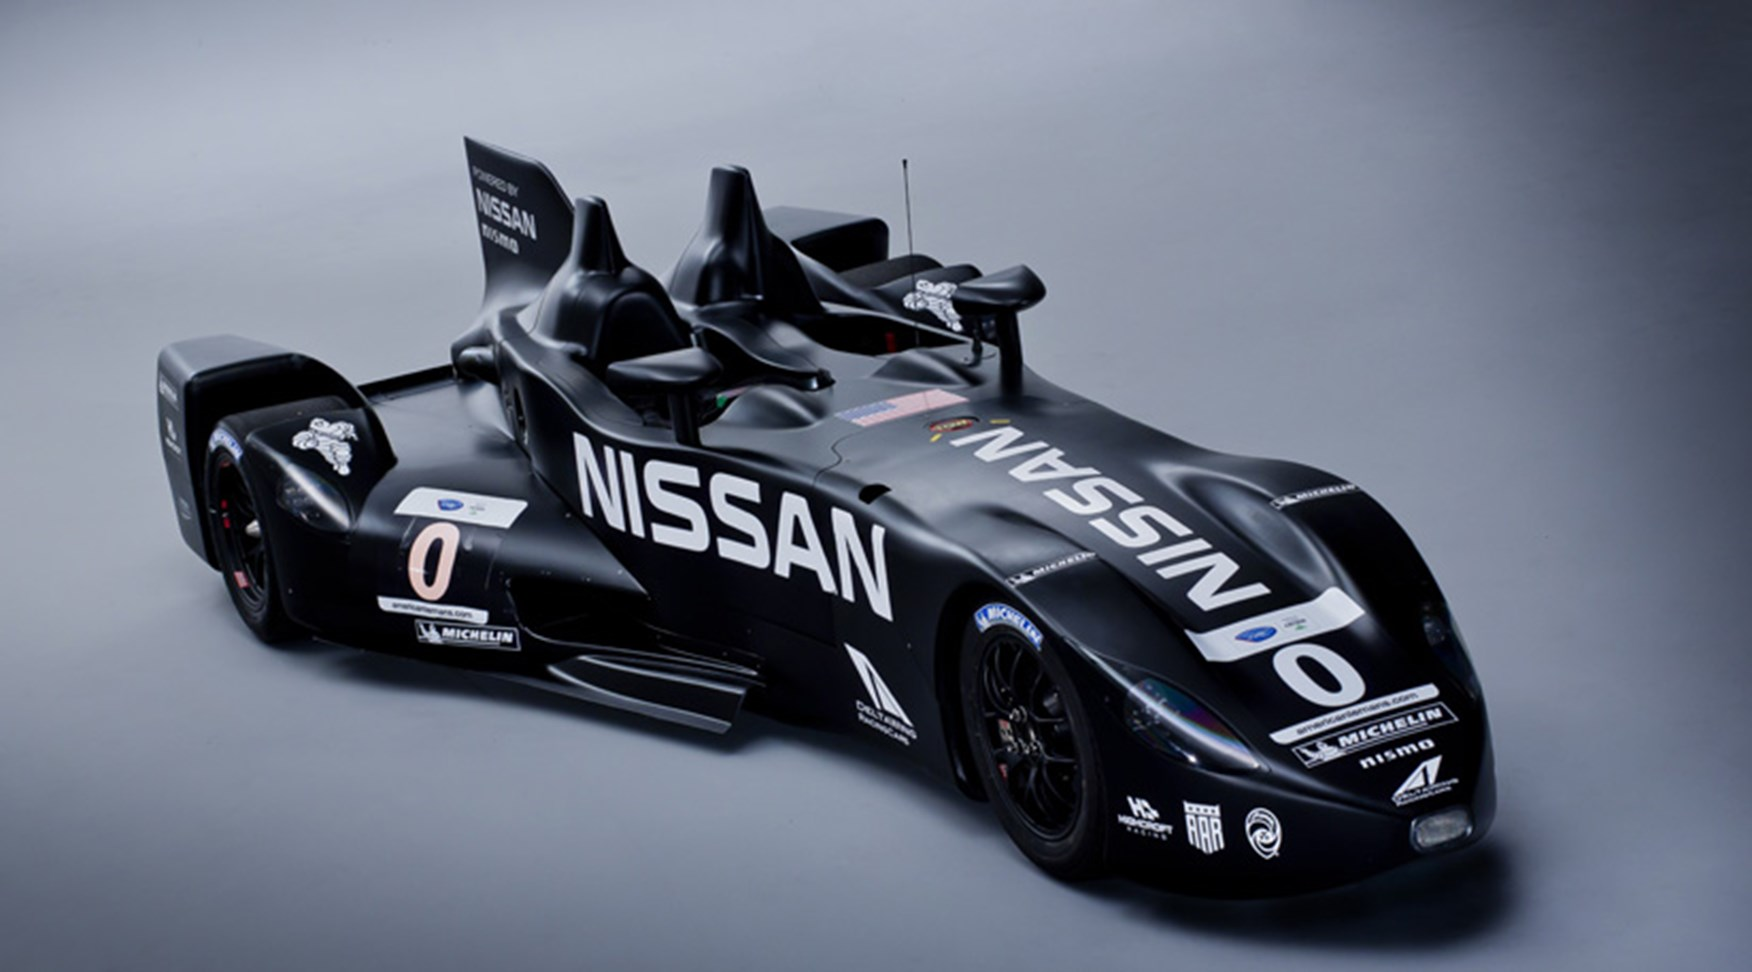 Nissan Aiming To Build Radically Different 2015 Le Mans